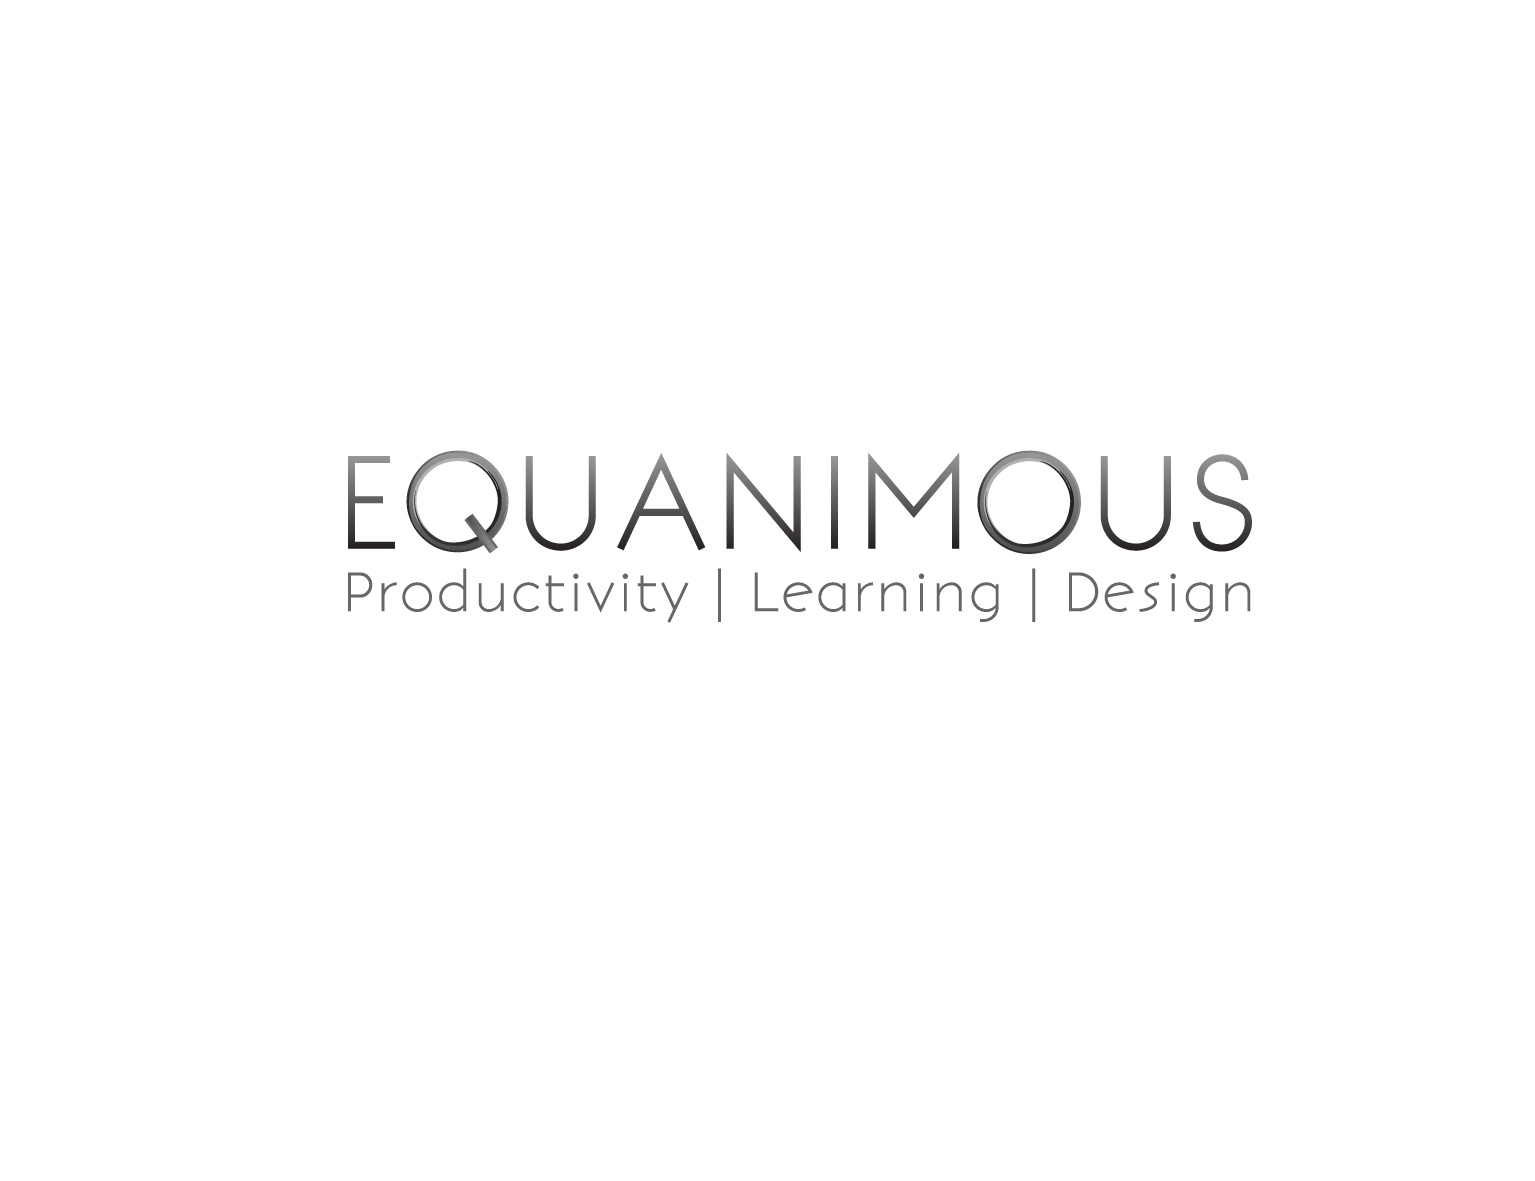 Logo Design by 3draw - Entry No. 413 in the Logo Design Contest Logo Design : EQUANIMOUS : Productivity | Learning | Design.